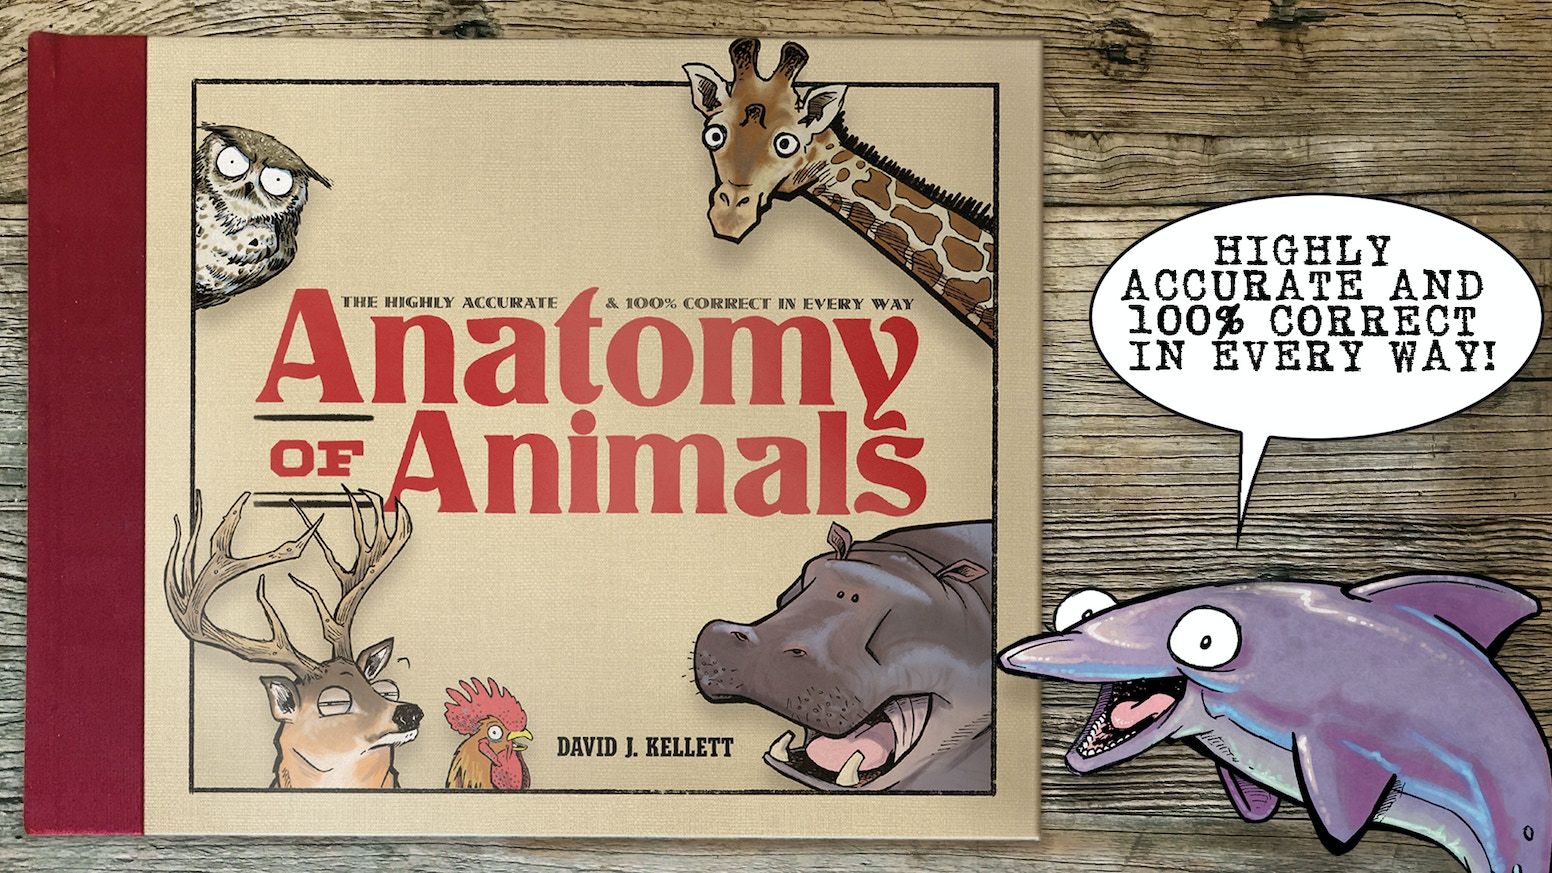 Classy hardcover book collection of comics...featuring everything you need to know about today's modern animals!